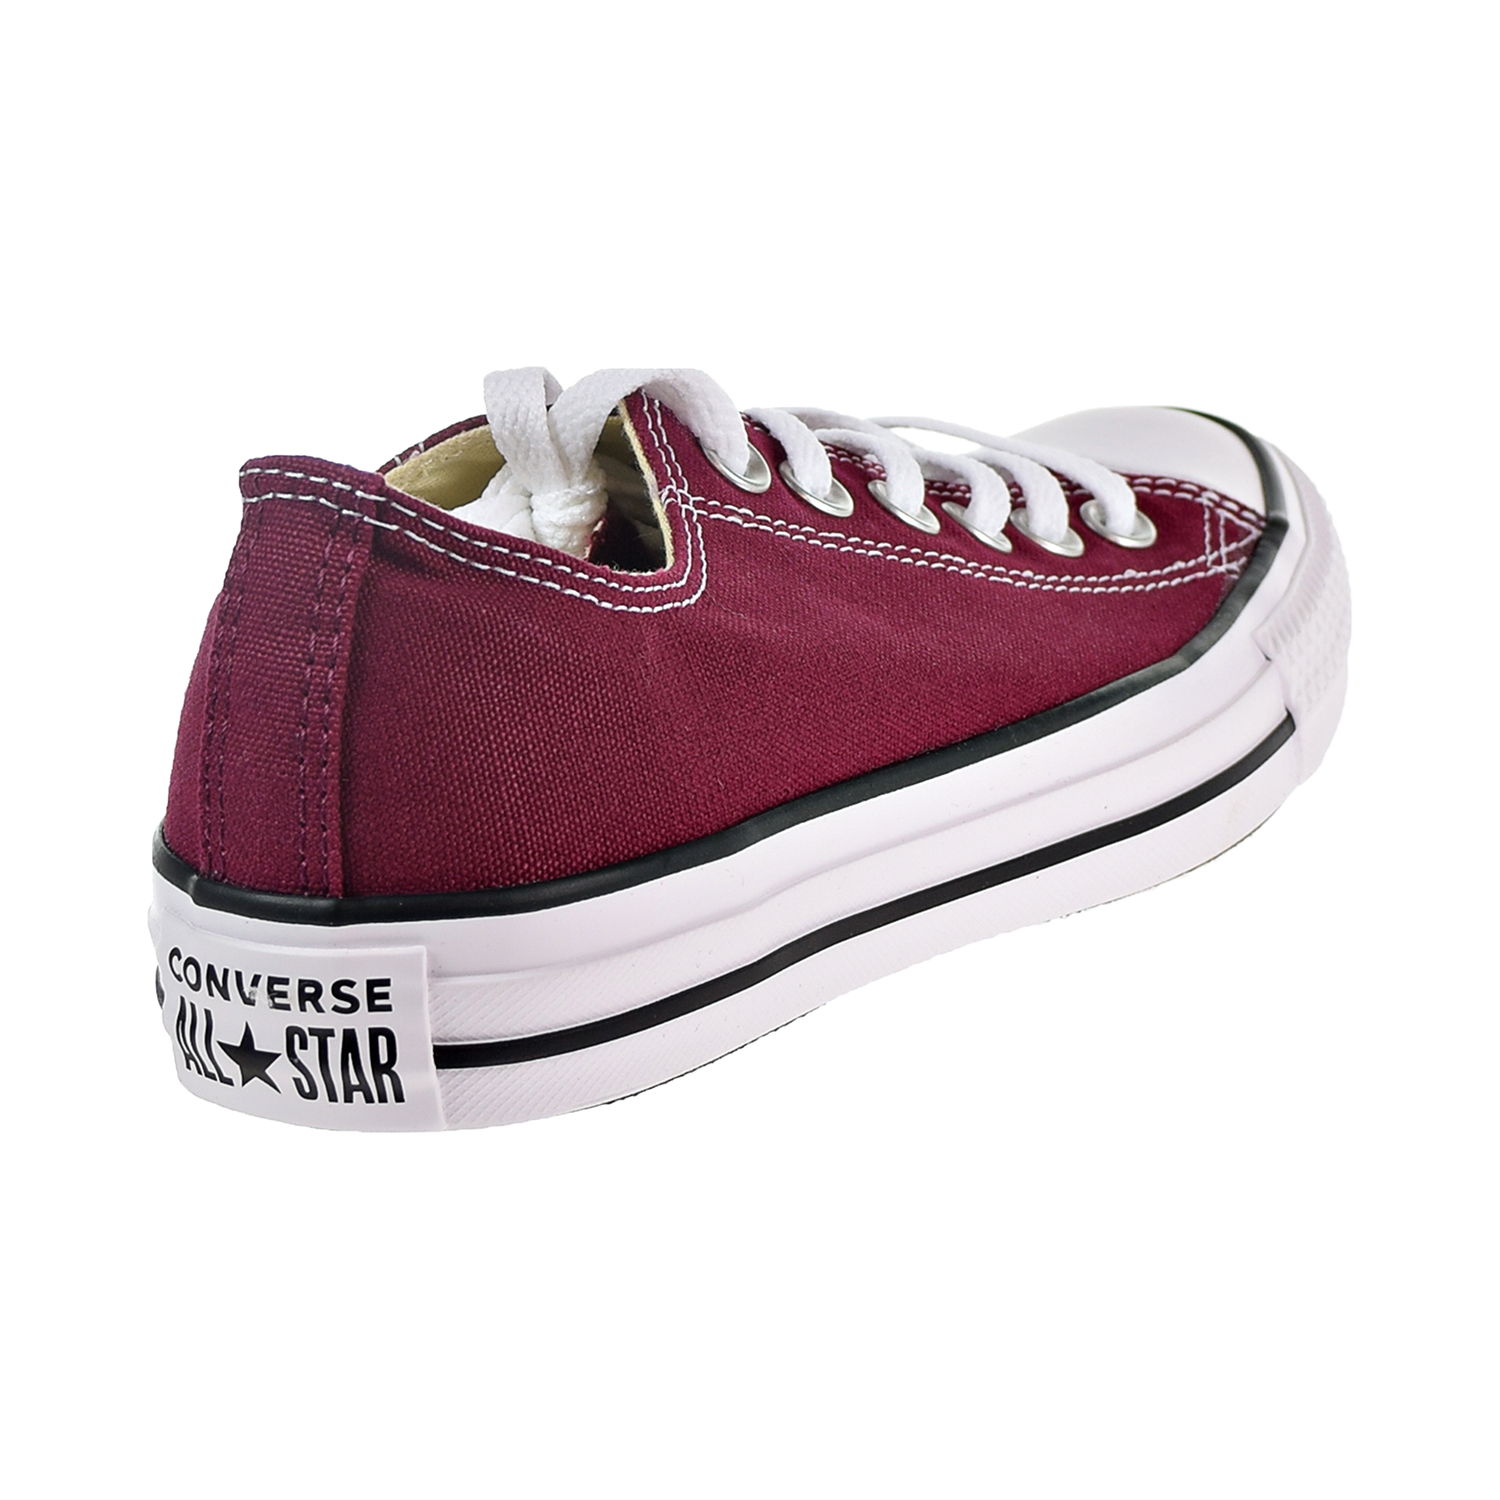 80db3f1bcbfd Converse Chuck Taylor All Star Ox Men s Big Kids  Shoes Maroon M9691 ...